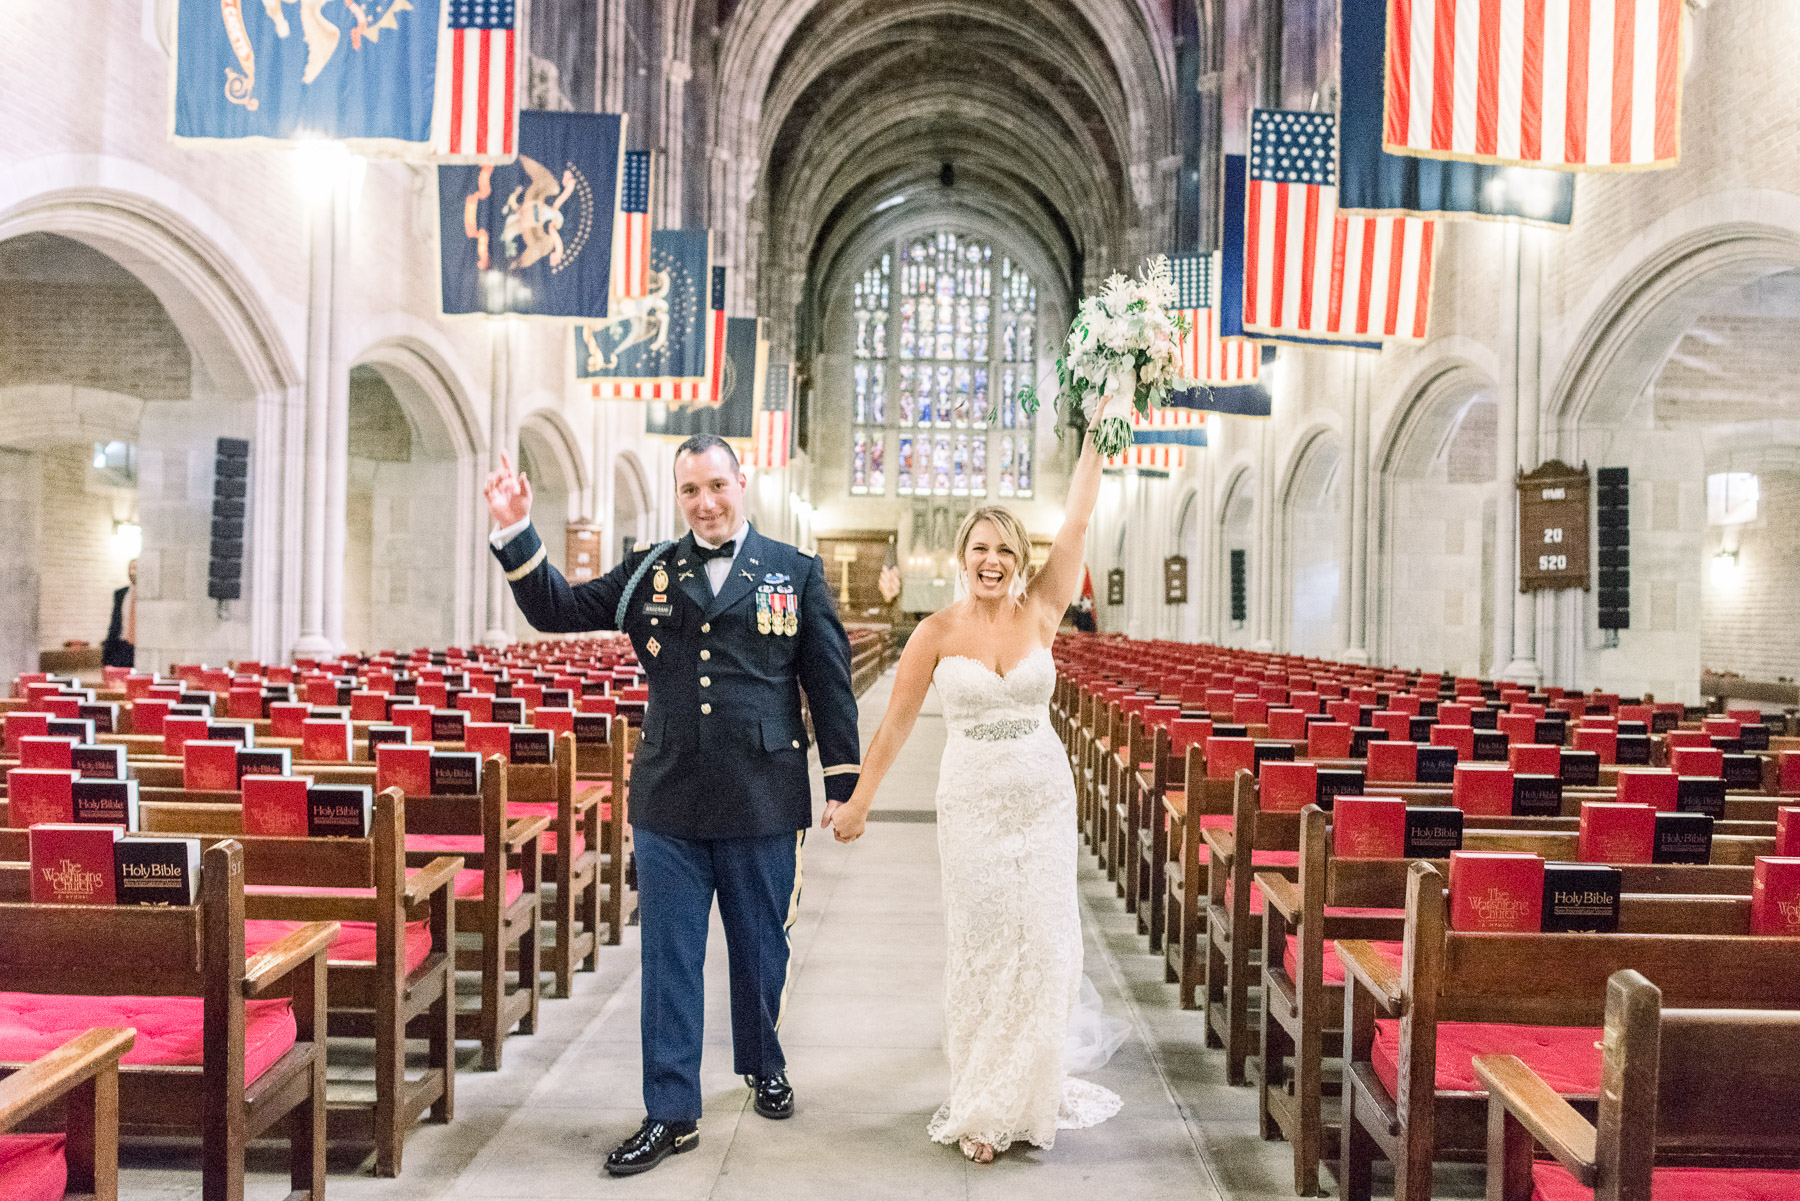 West Point Wedding by Michelle Lange Photography-42.jpg